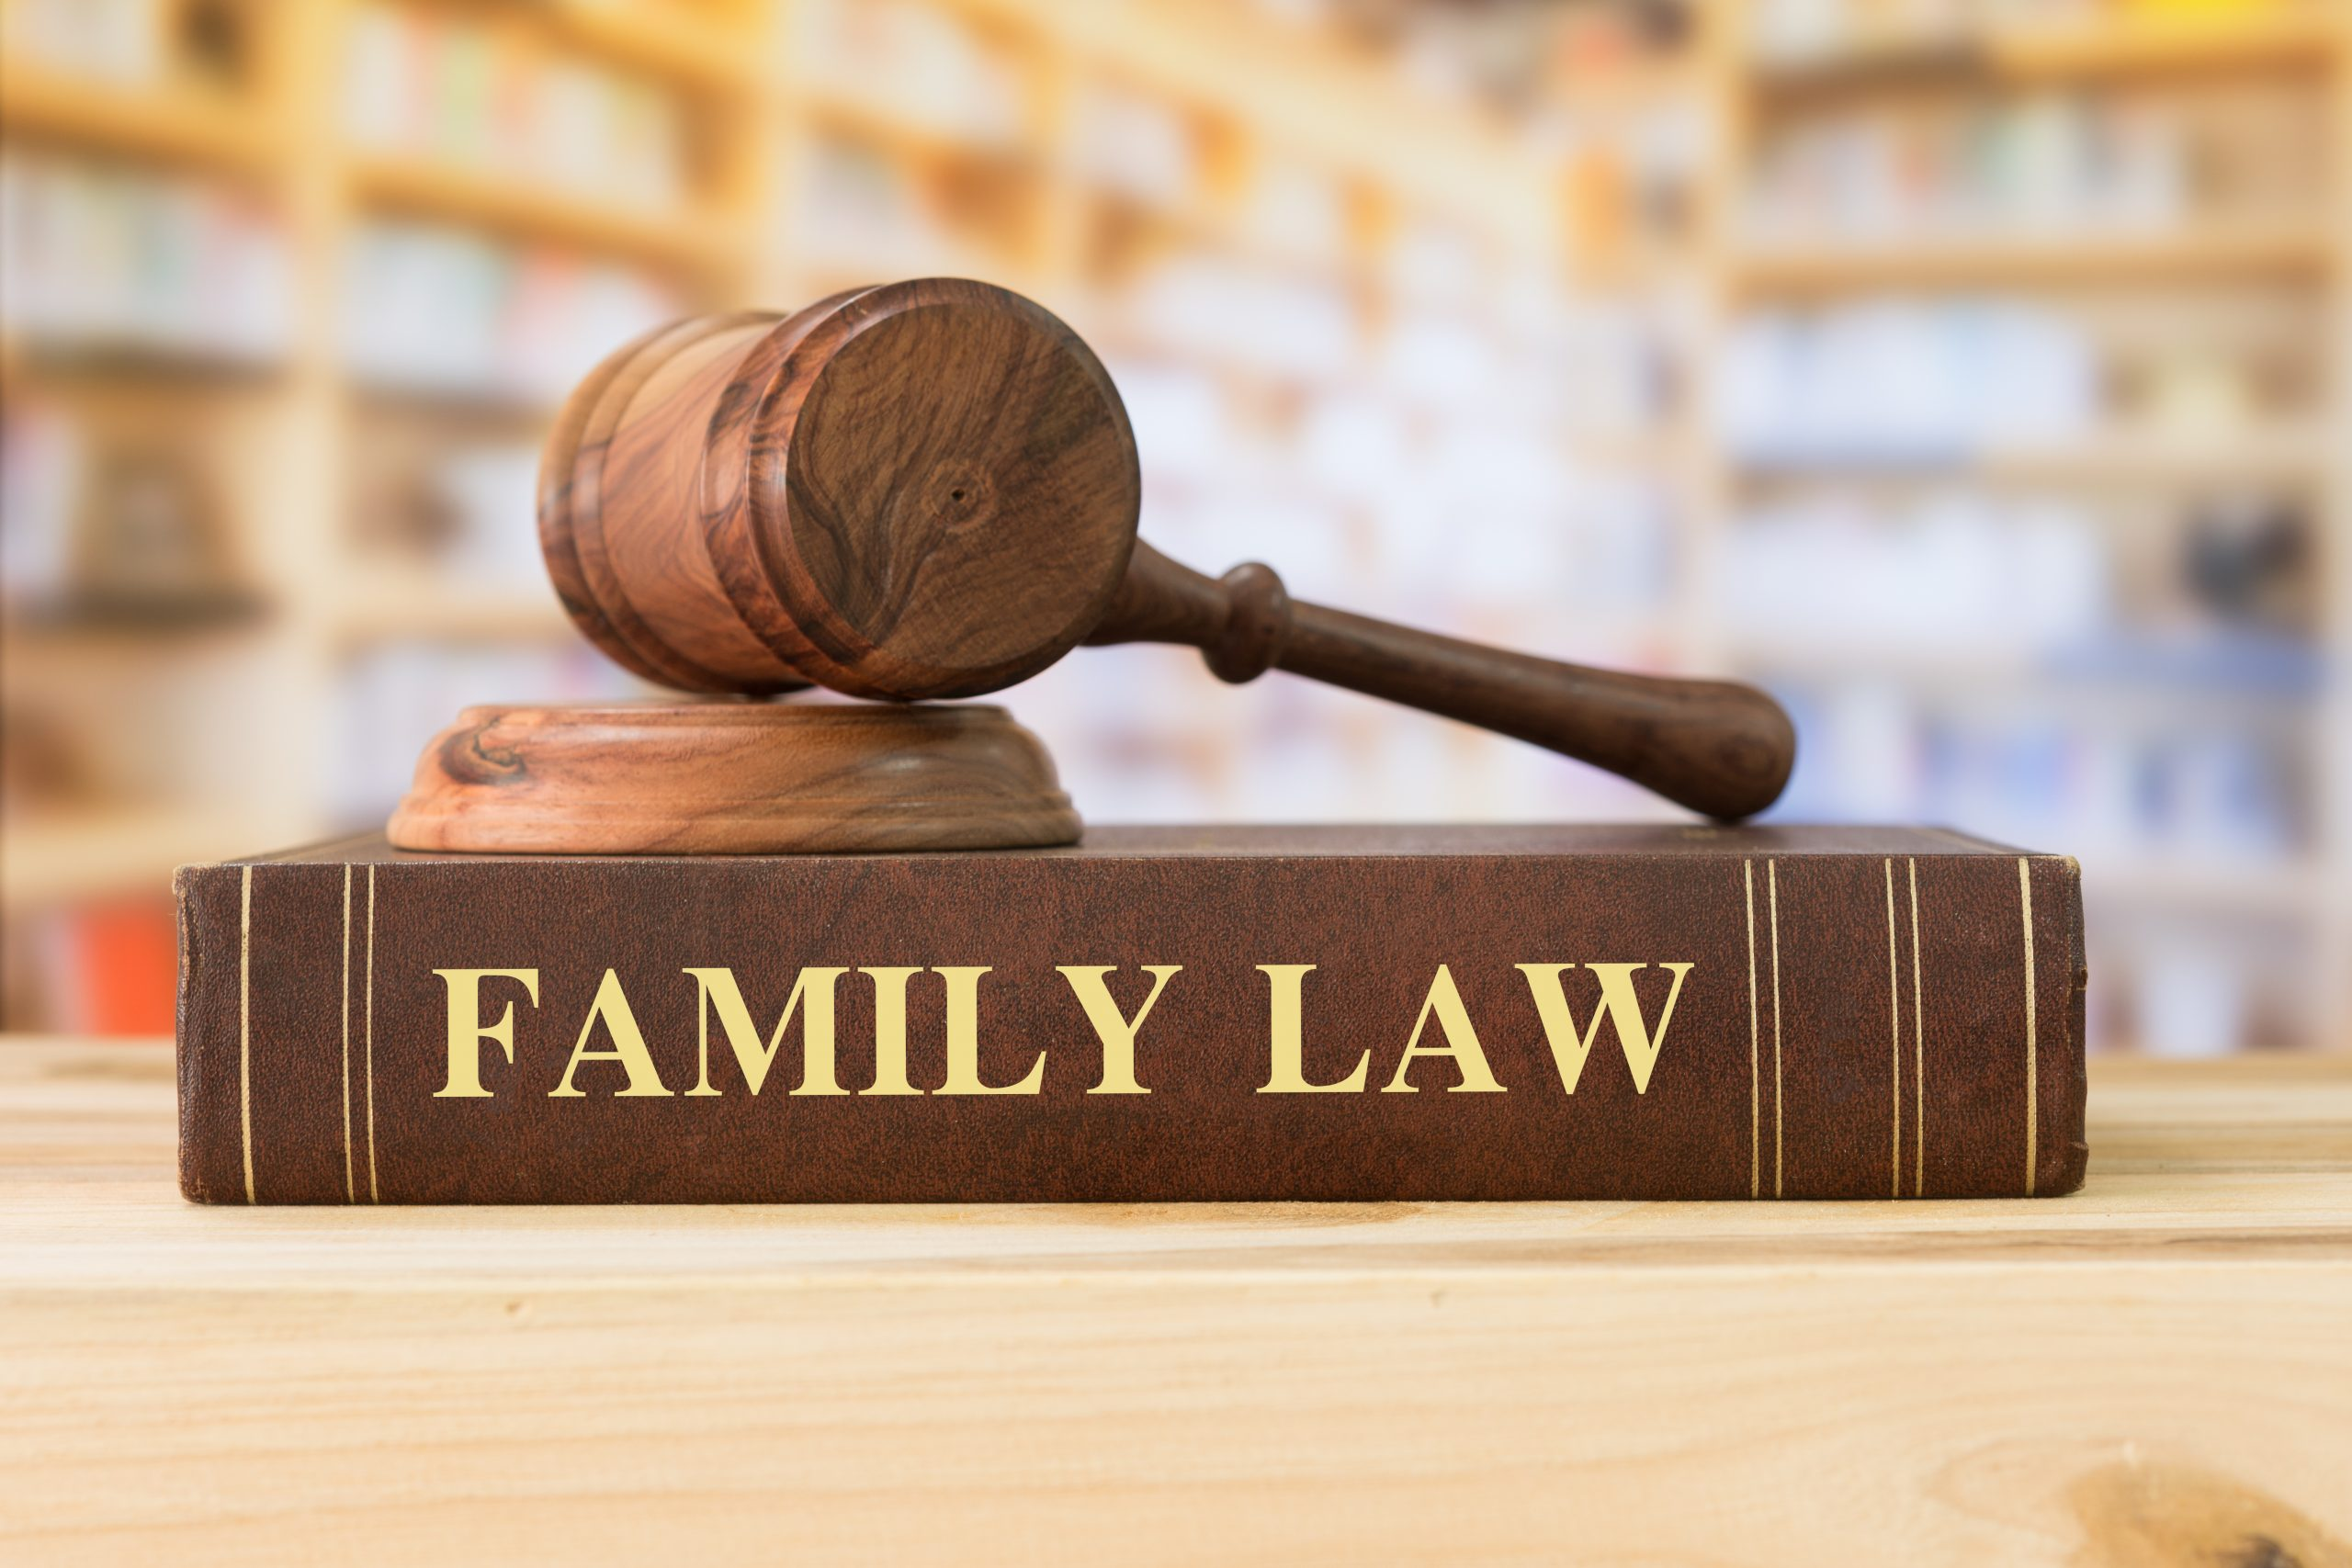 DC Family Law Attorney Washington DC Legal Article Featured Image by Antonoplos & Associates